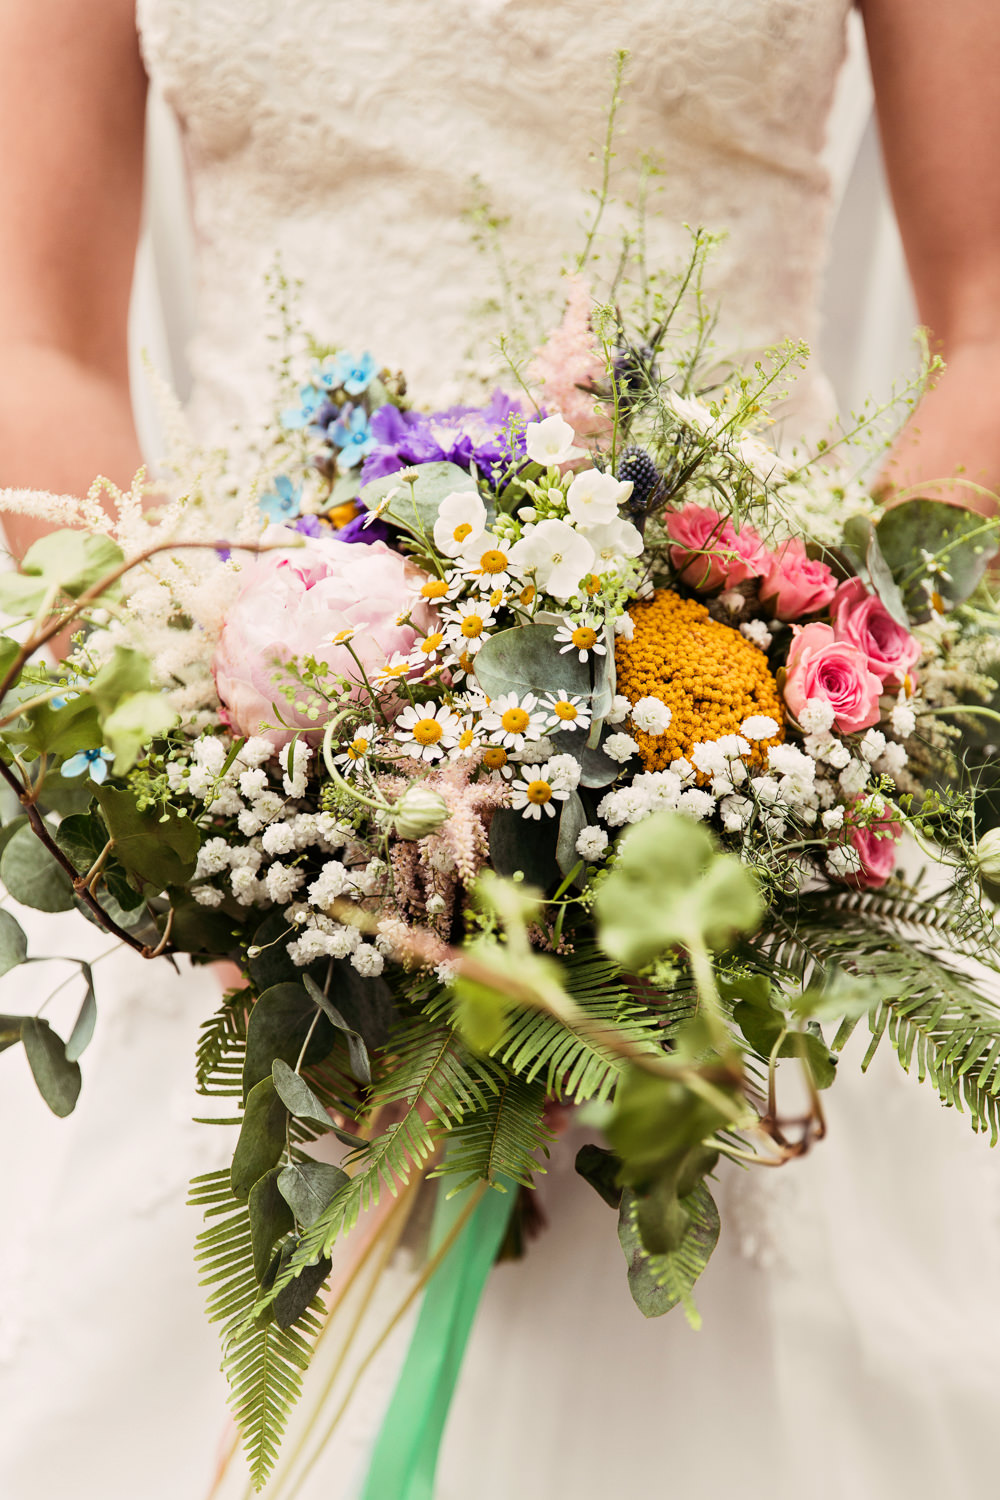 Bride Bridal Bouquet Wildflower Meadow Daisy Rose Peony Fern Wax Flowers Festival Wedding Mismatched Country Camilla Lucinda Photography